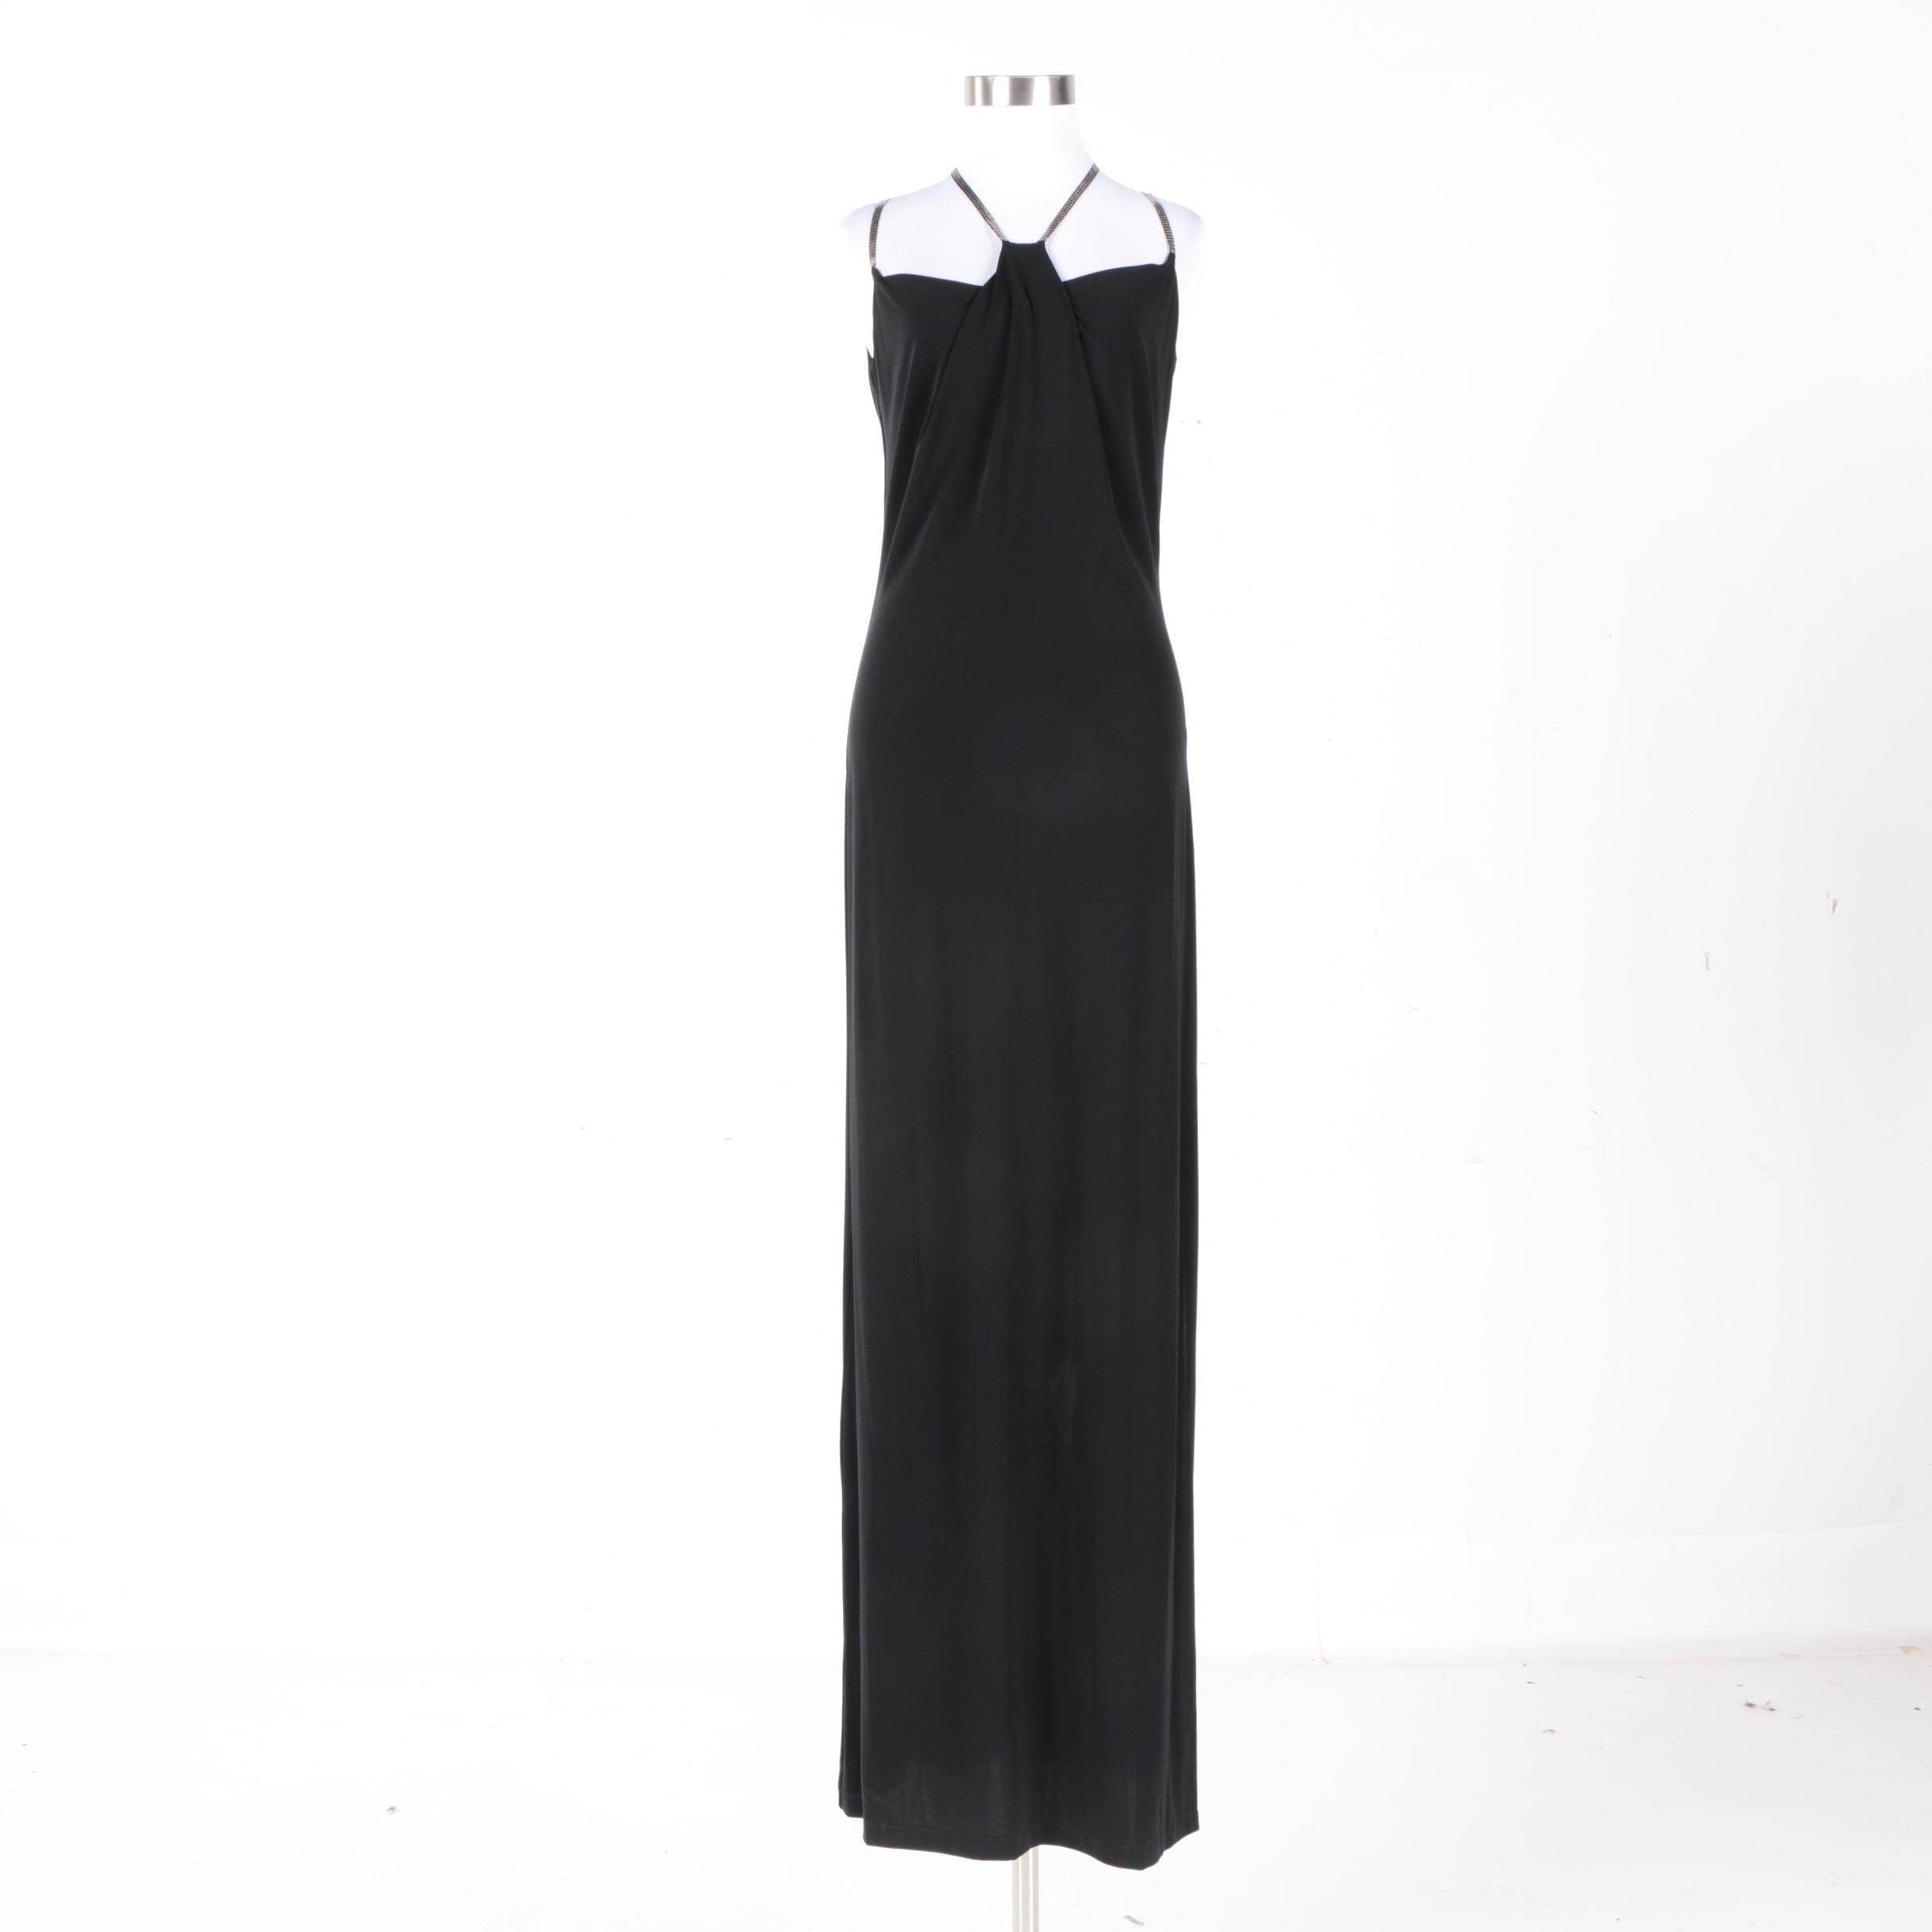 Plein Sud of France Black Sleeveless Evening Gown with Sequined Straps